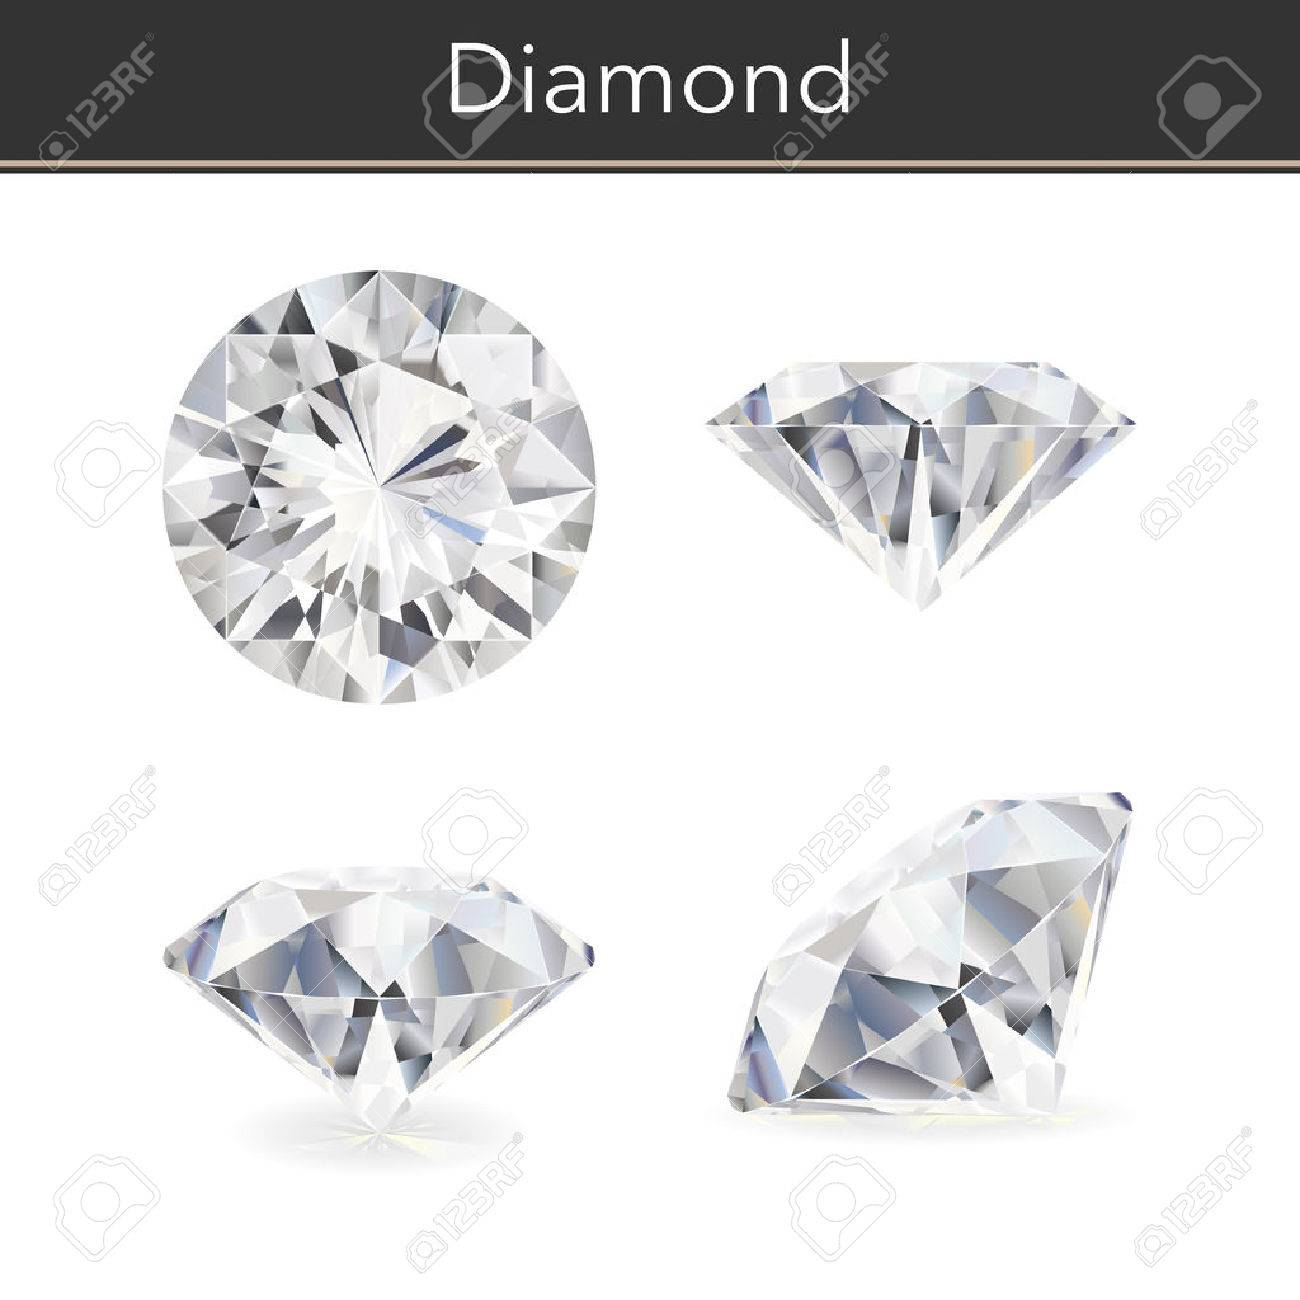 Vector photorealistic illustration of a diamond. Isolated white background. Stock Vector - 54246478